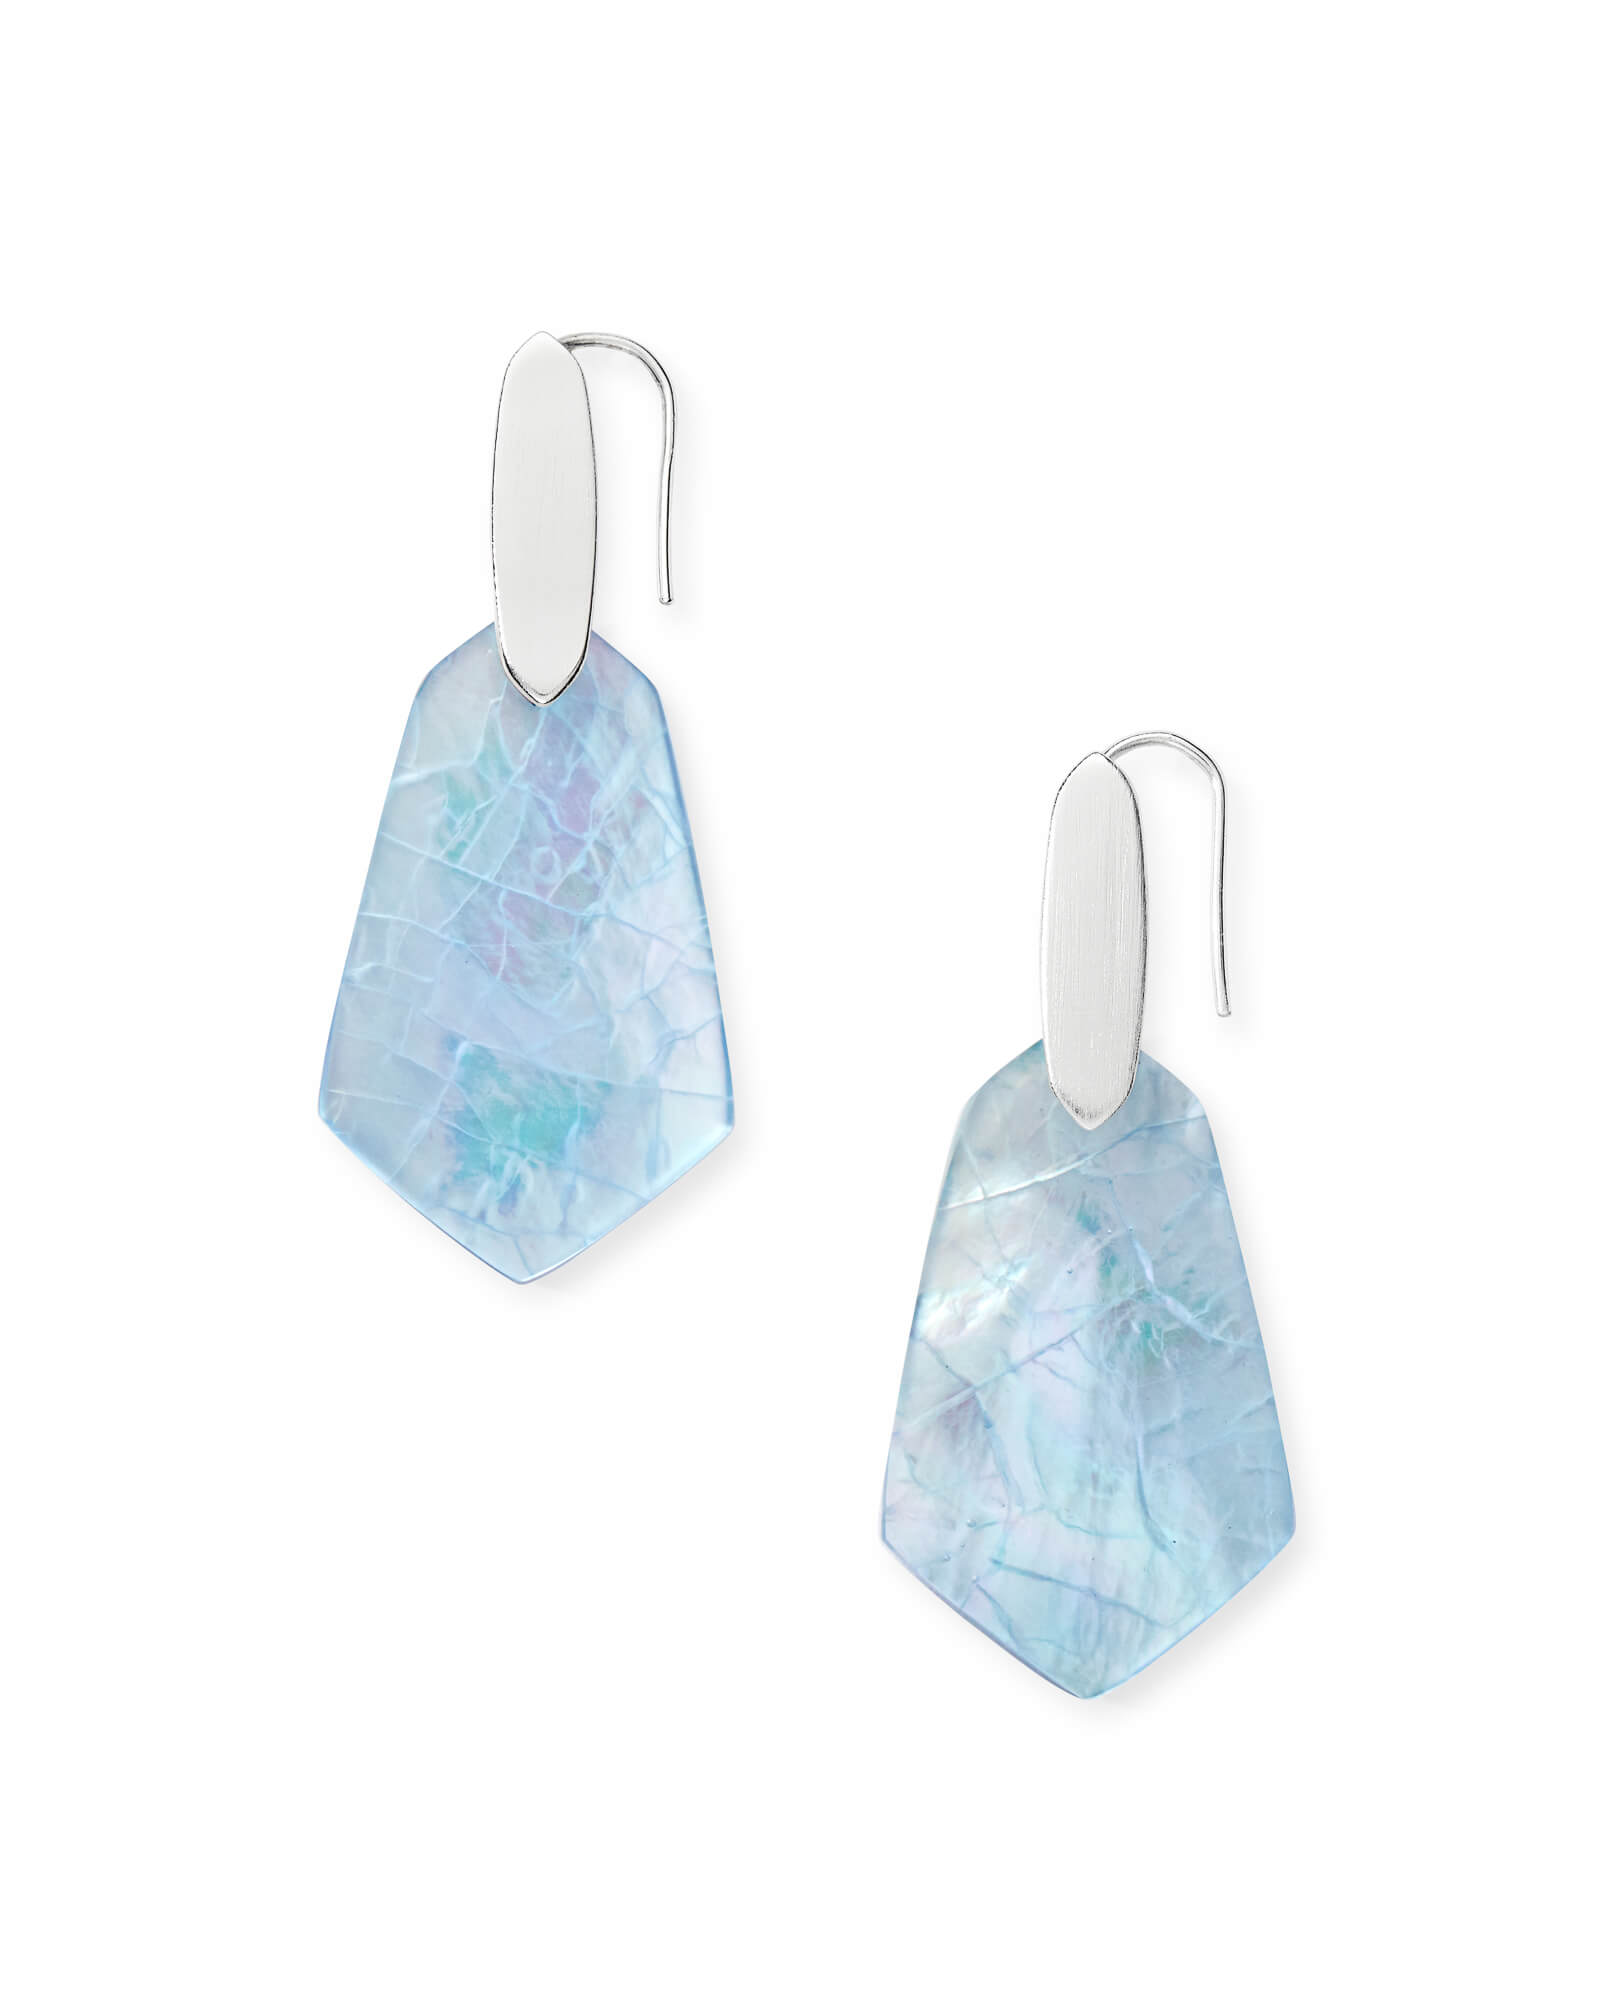 Camila Bright Silver Drop Earrings in Sky Blue Illusion